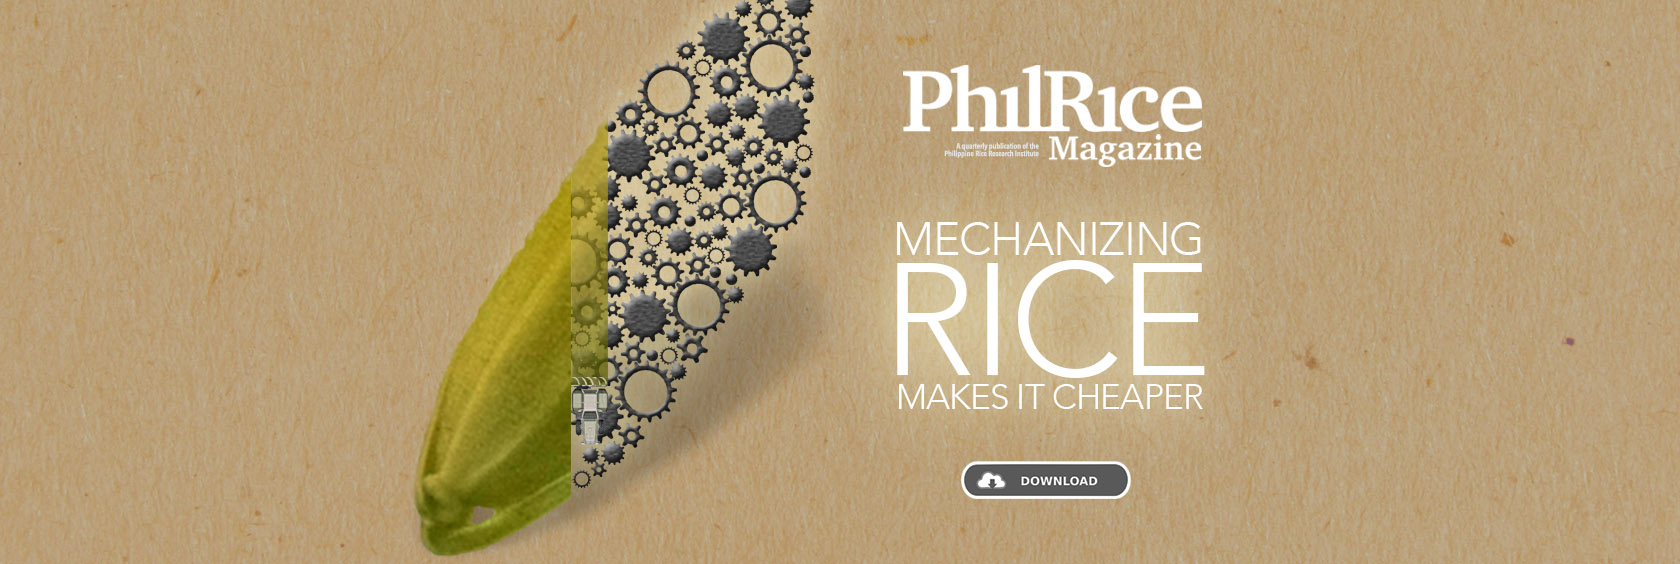 mechanical-rice-banner